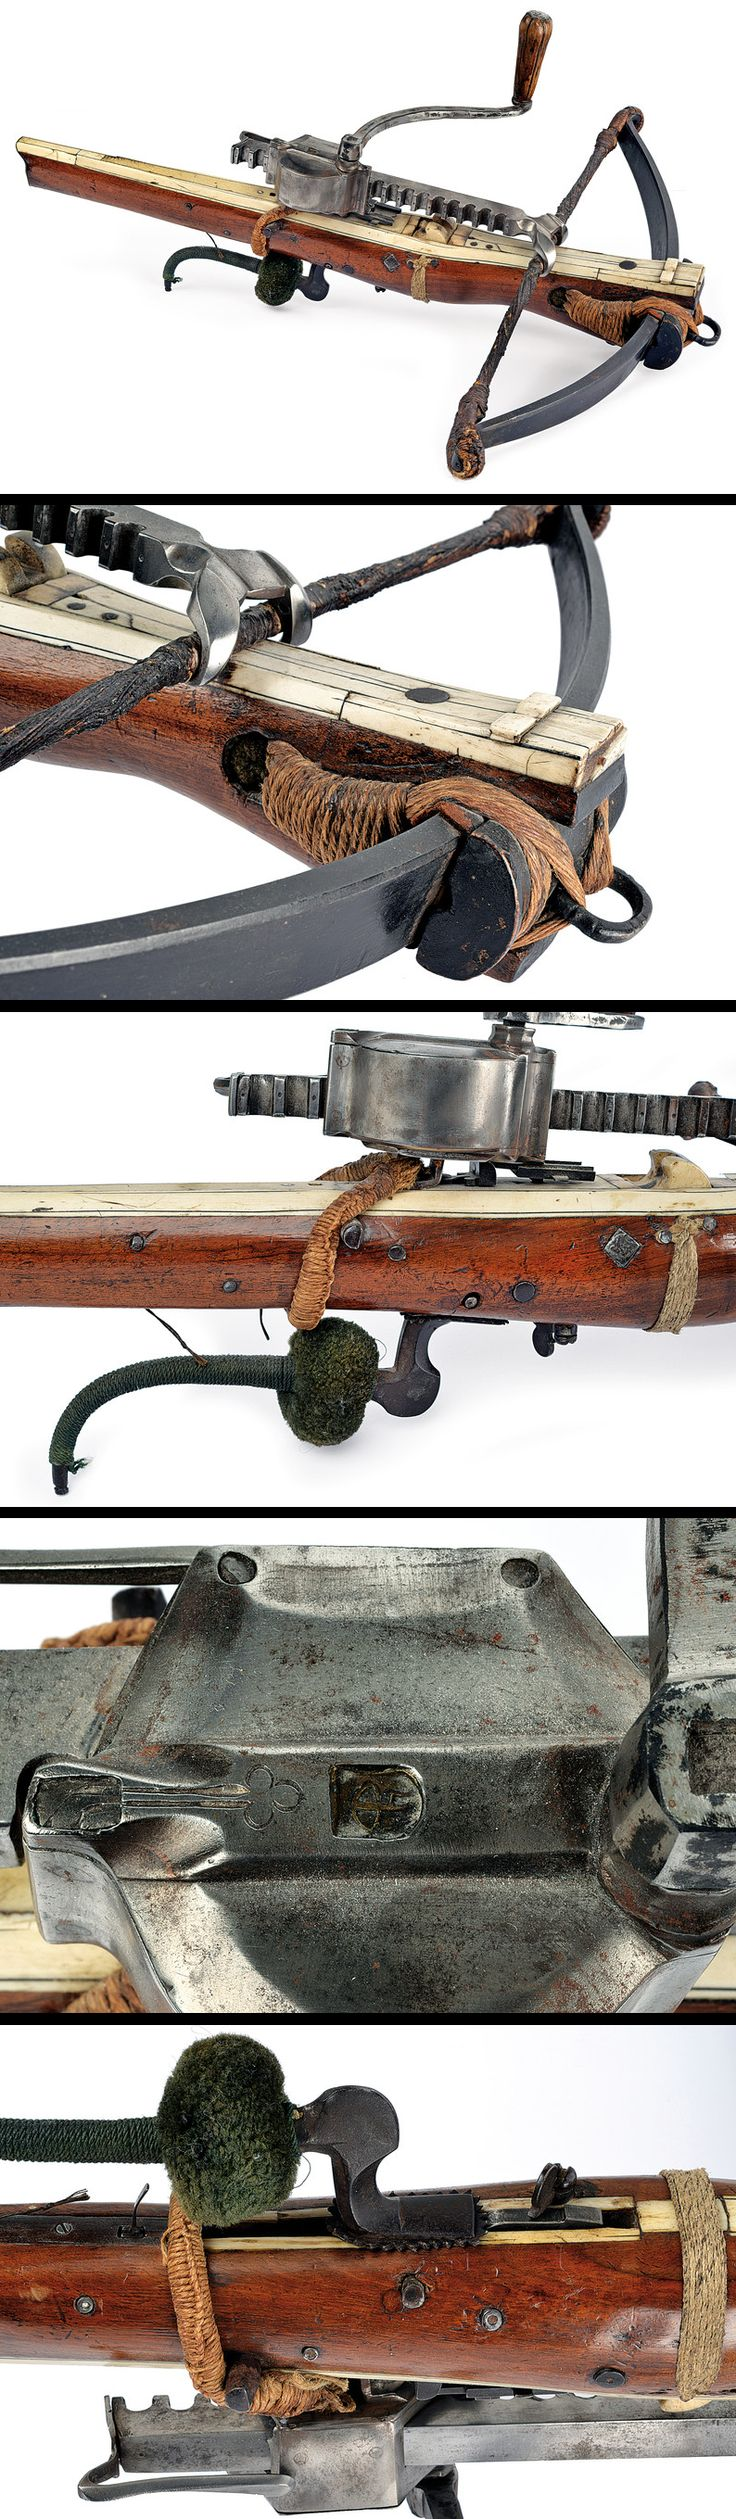 It's vintage and I suddenly can't breathe anymore.  A crossbow with its windlass, Germany, ca. 17th century.  This is a beautiful thing.